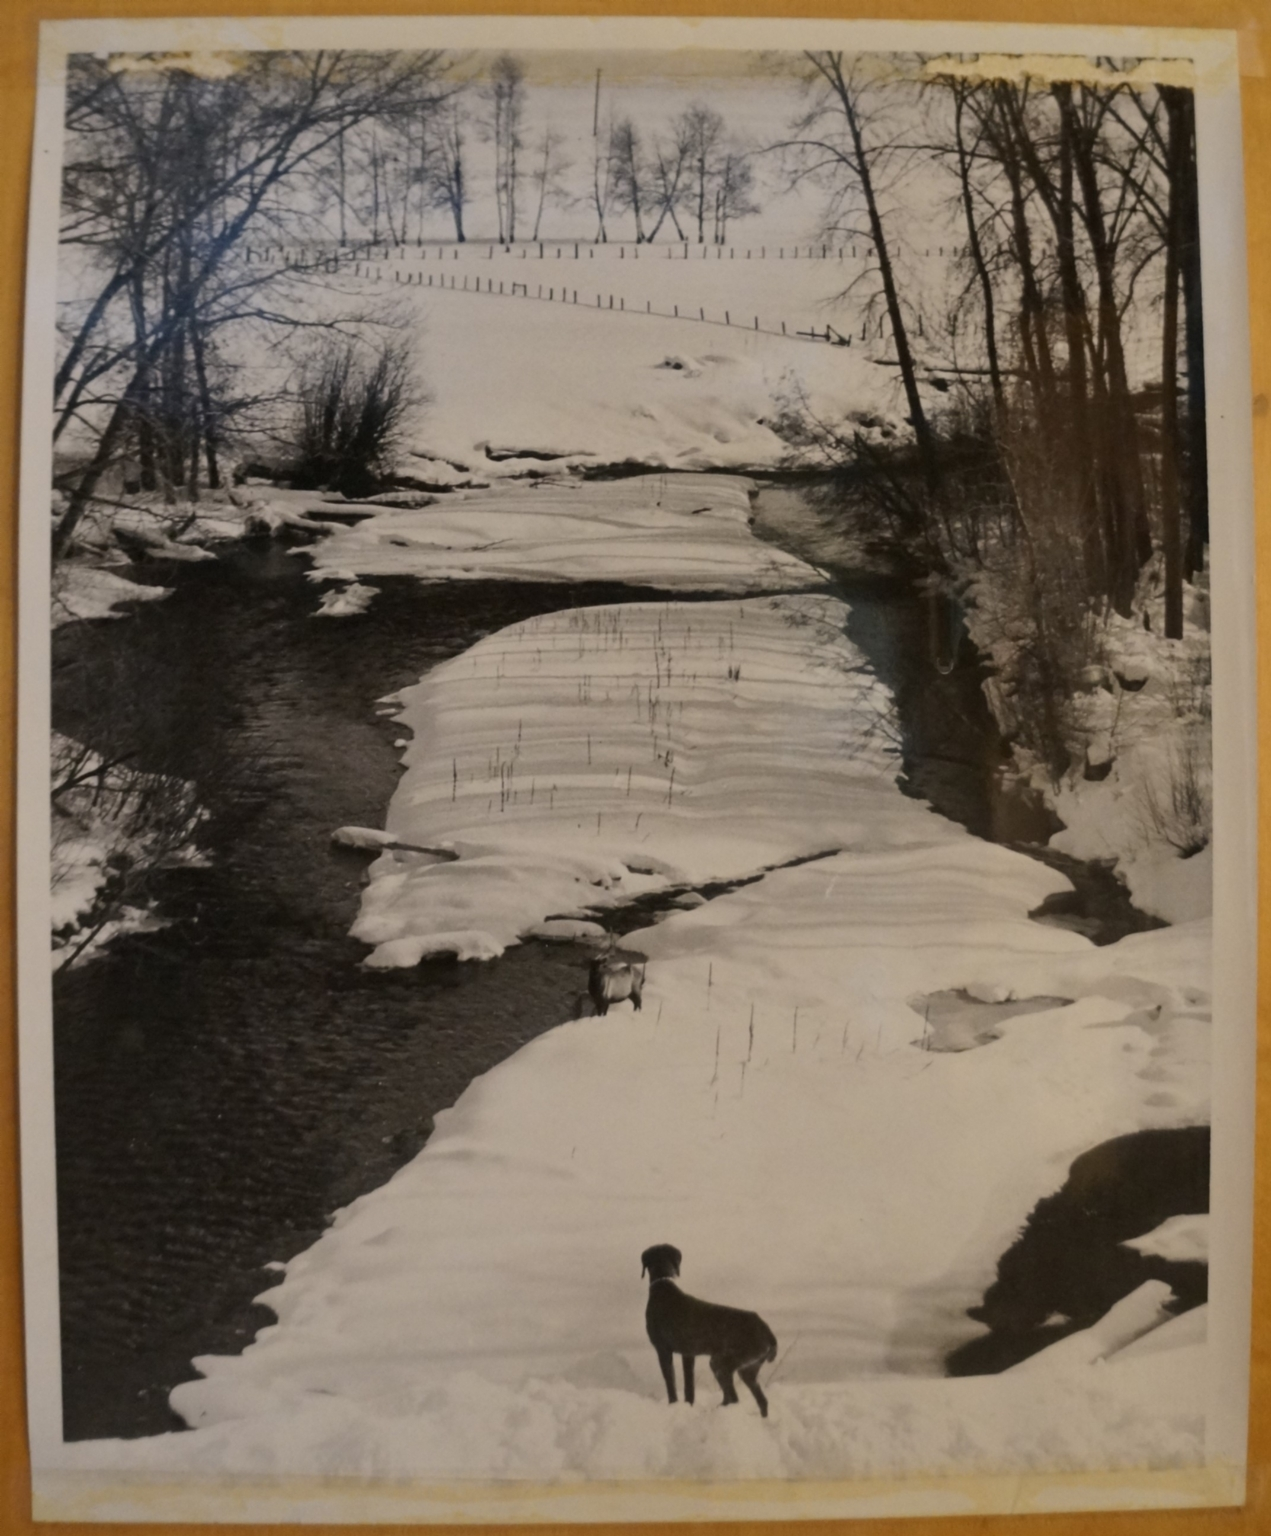 Dog at River in Winter